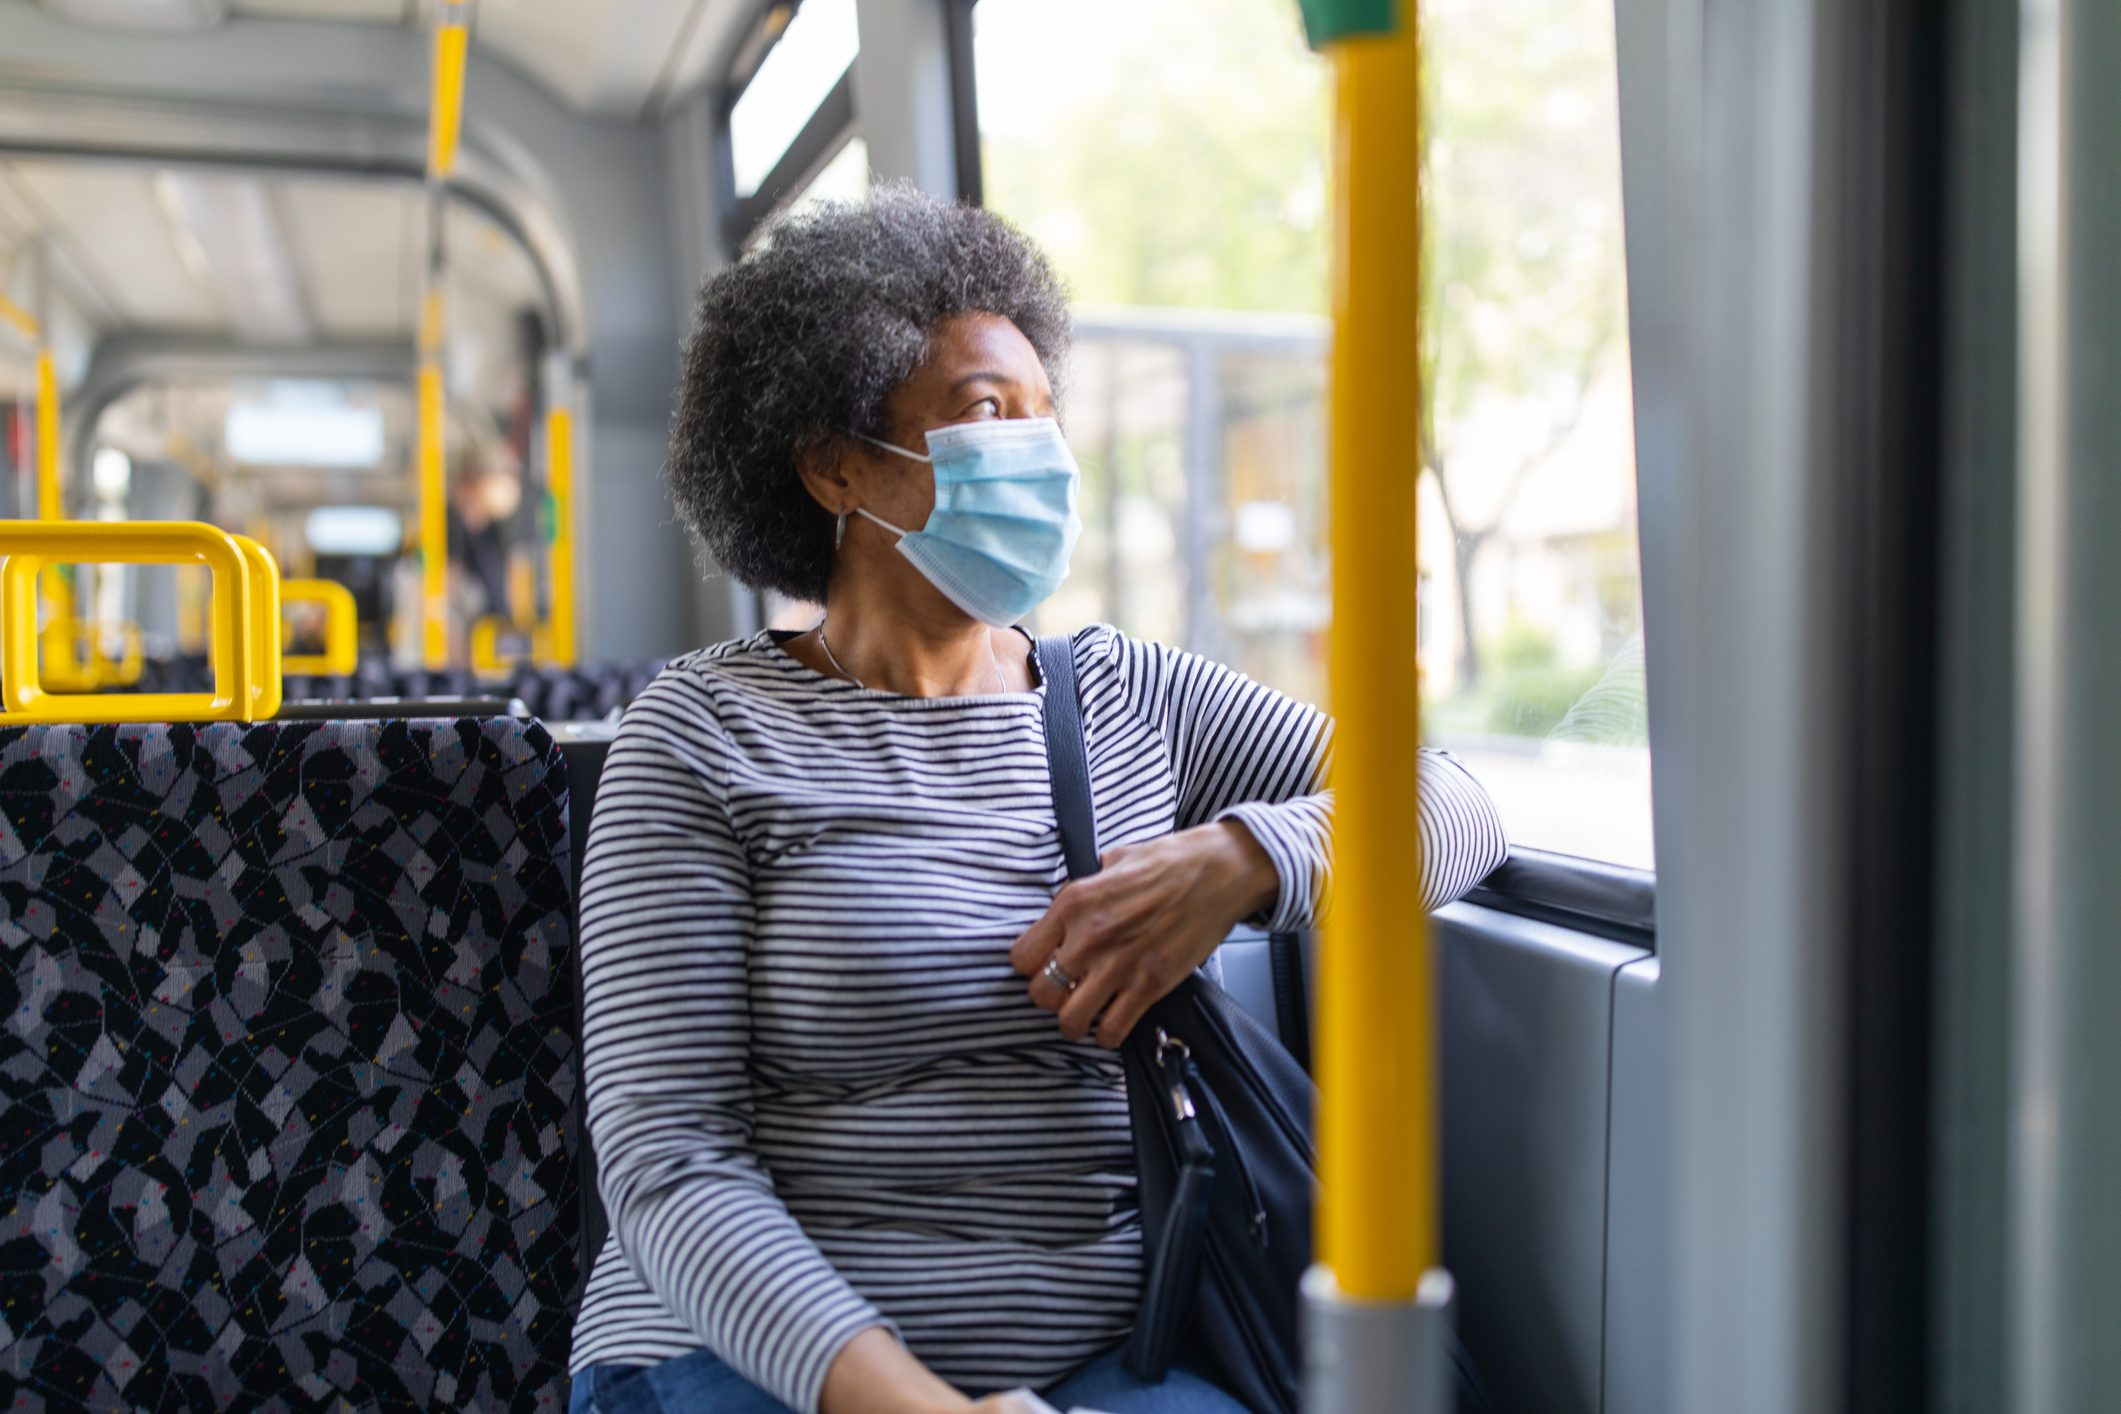 Woman with face mask travelling in the tram during Covid-19 outbreak